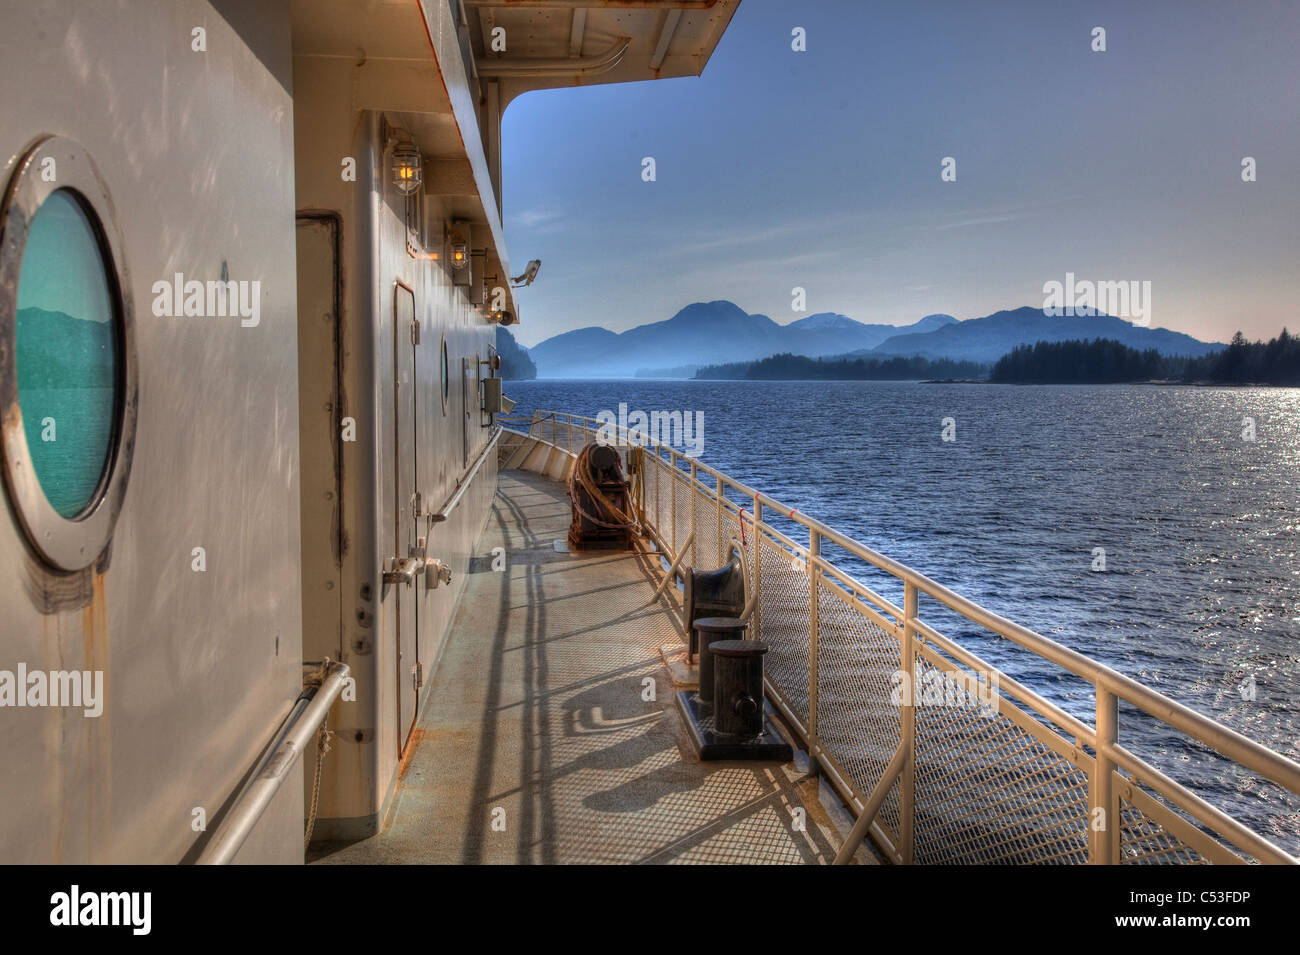 View of an inter-island ferry bound for Metakatla with scenic views of Southeast Alaska's Inside Passage. - Stock Image